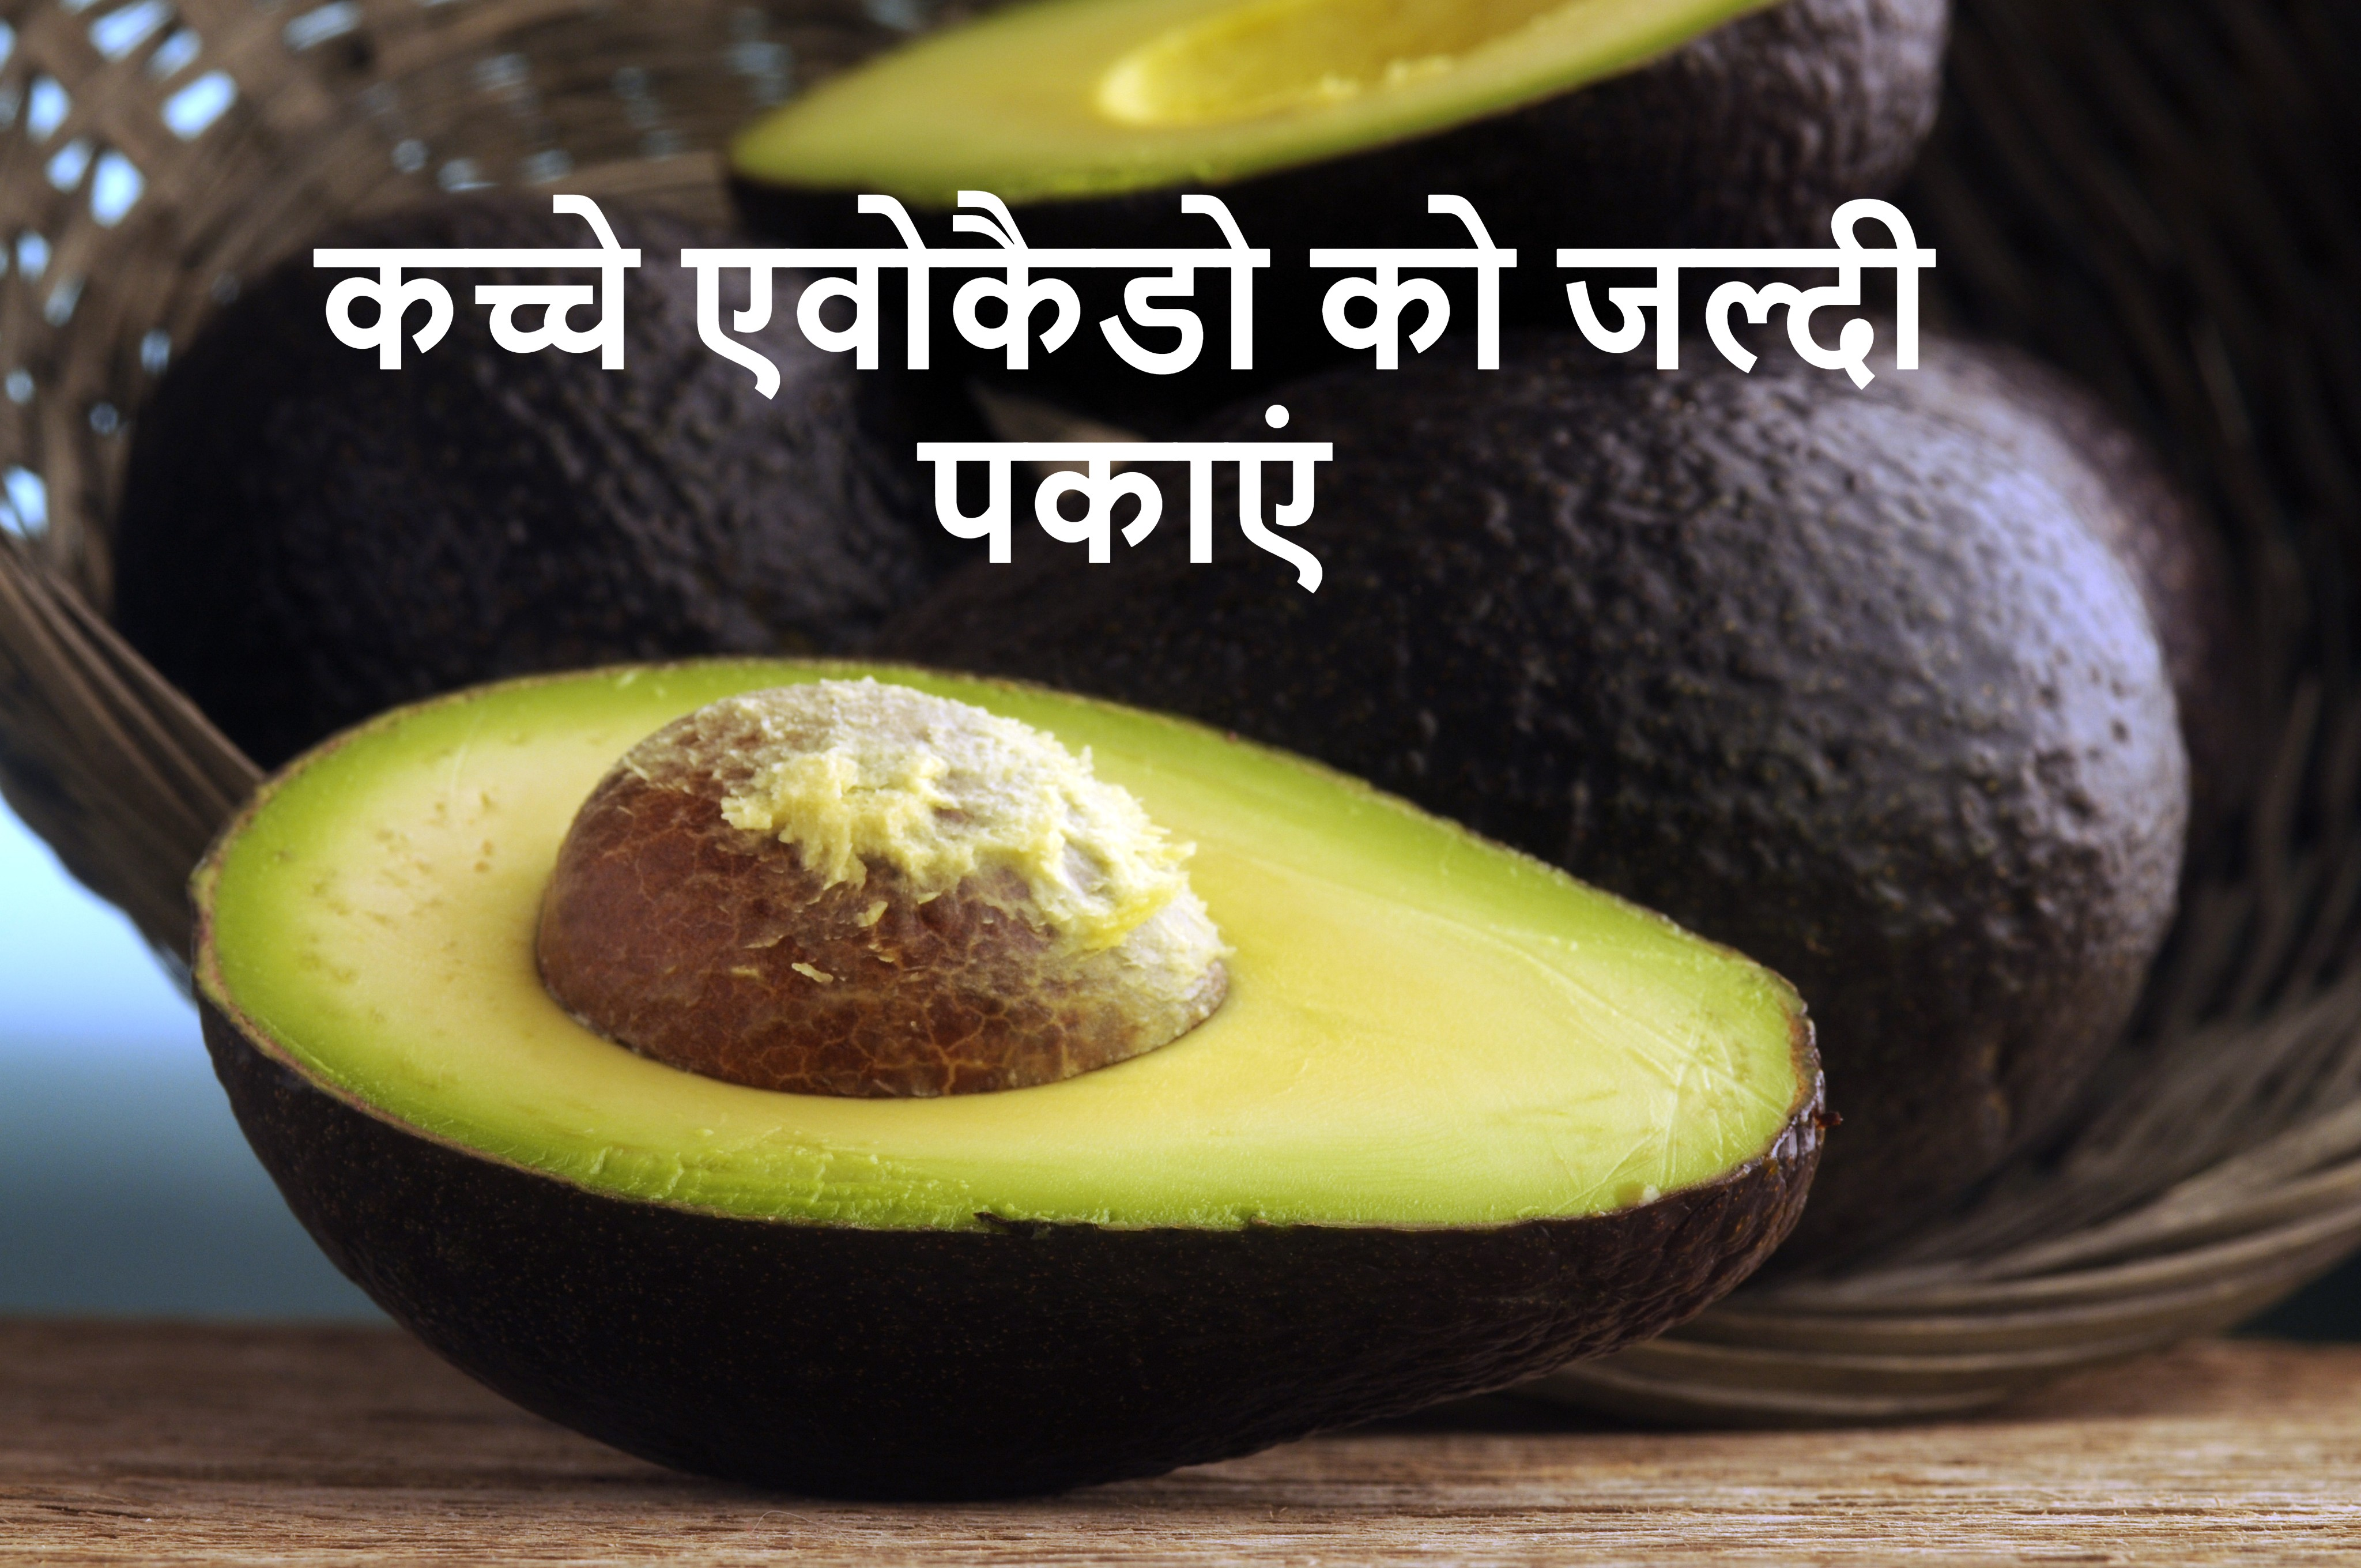 How to ripen avocados Fast